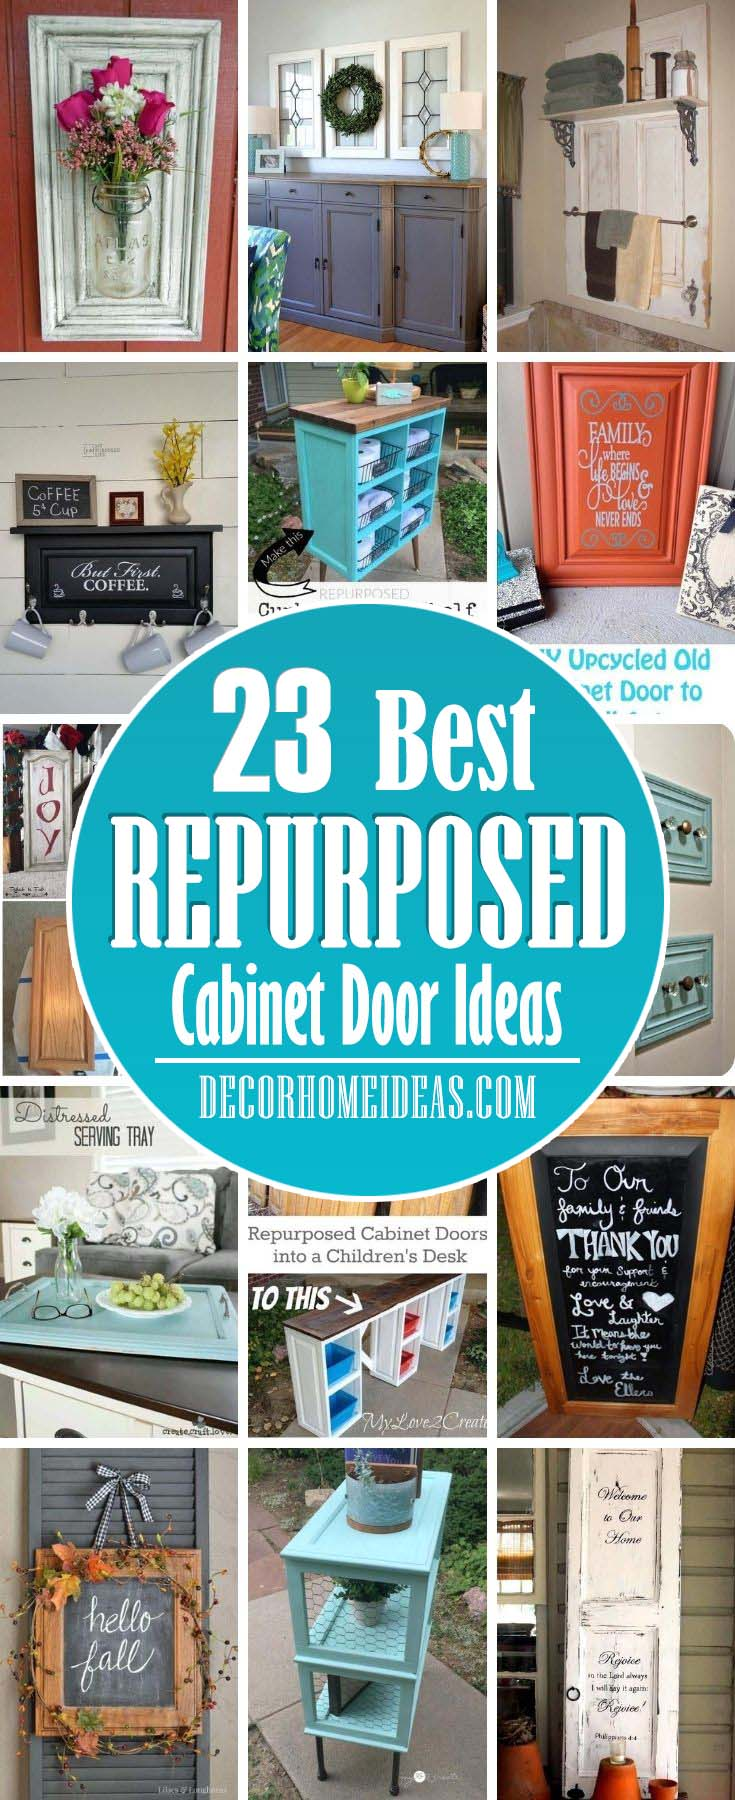 Best Repurposed Cabinet Door Ideas. Before you throw them away, consider a repurposing project; with a bit of creativity, you can transform a cabinet door into a piece that's both functional and beautiful. #decorhomeideas